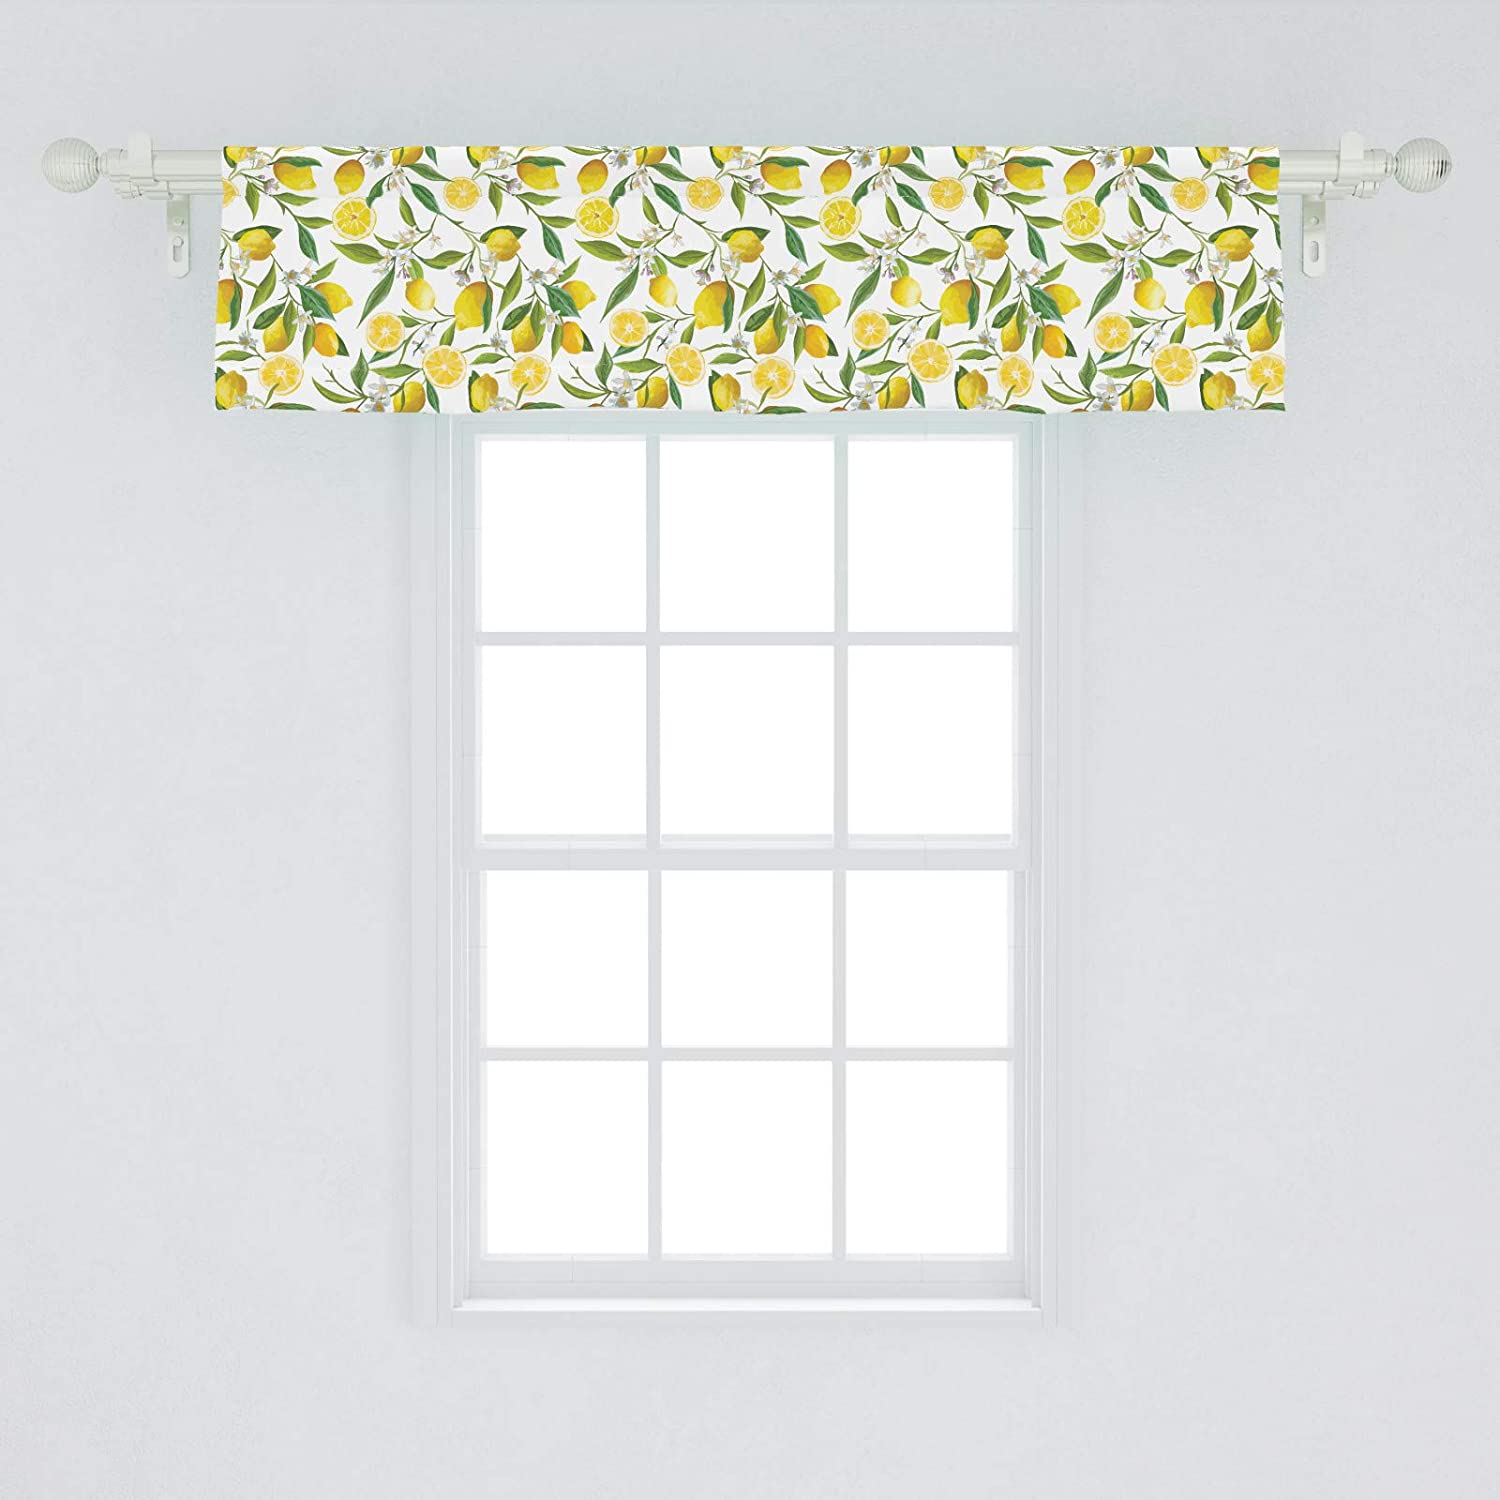 """Ambesonne Nature Window Valance, Exotic Lemon Tree Branches Yummy Delicious Kitchen Gardening Design, Curtain Valance for Kitchen Bedroom Decor with Rod Pocket, 54"""" X 12"""", Fern Green"""